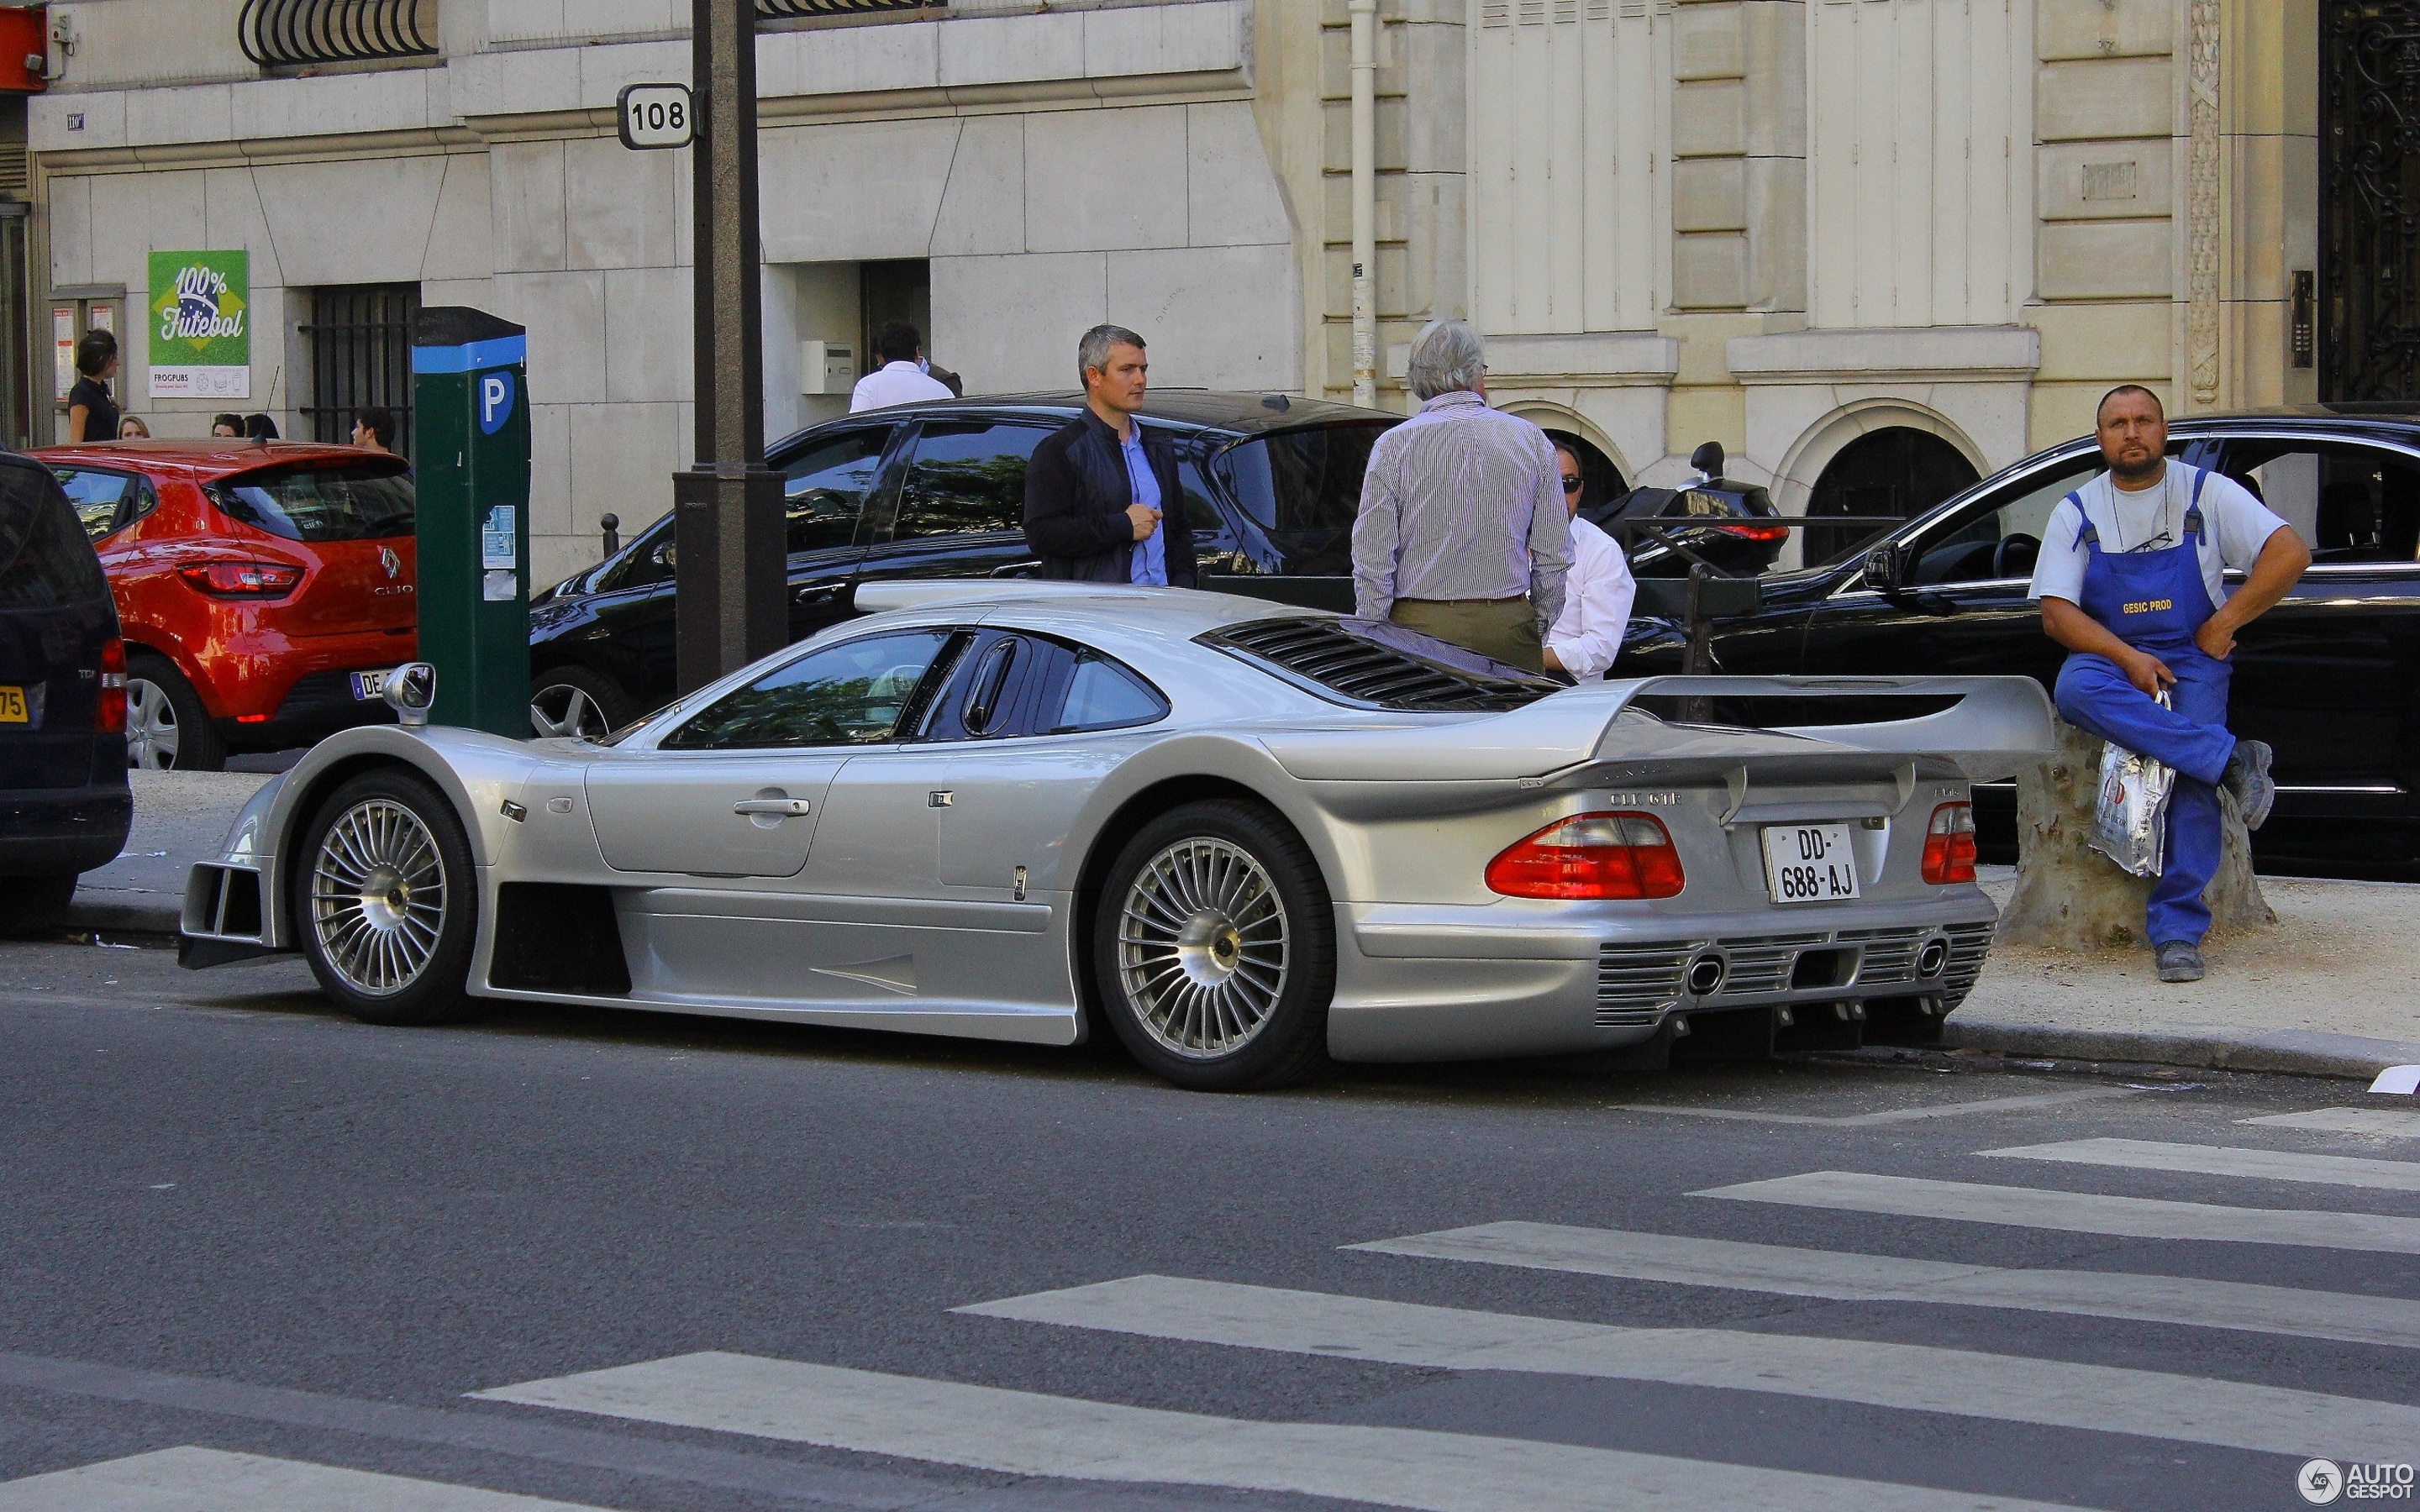 Superb Mercedes Benz CLK GTR AMG